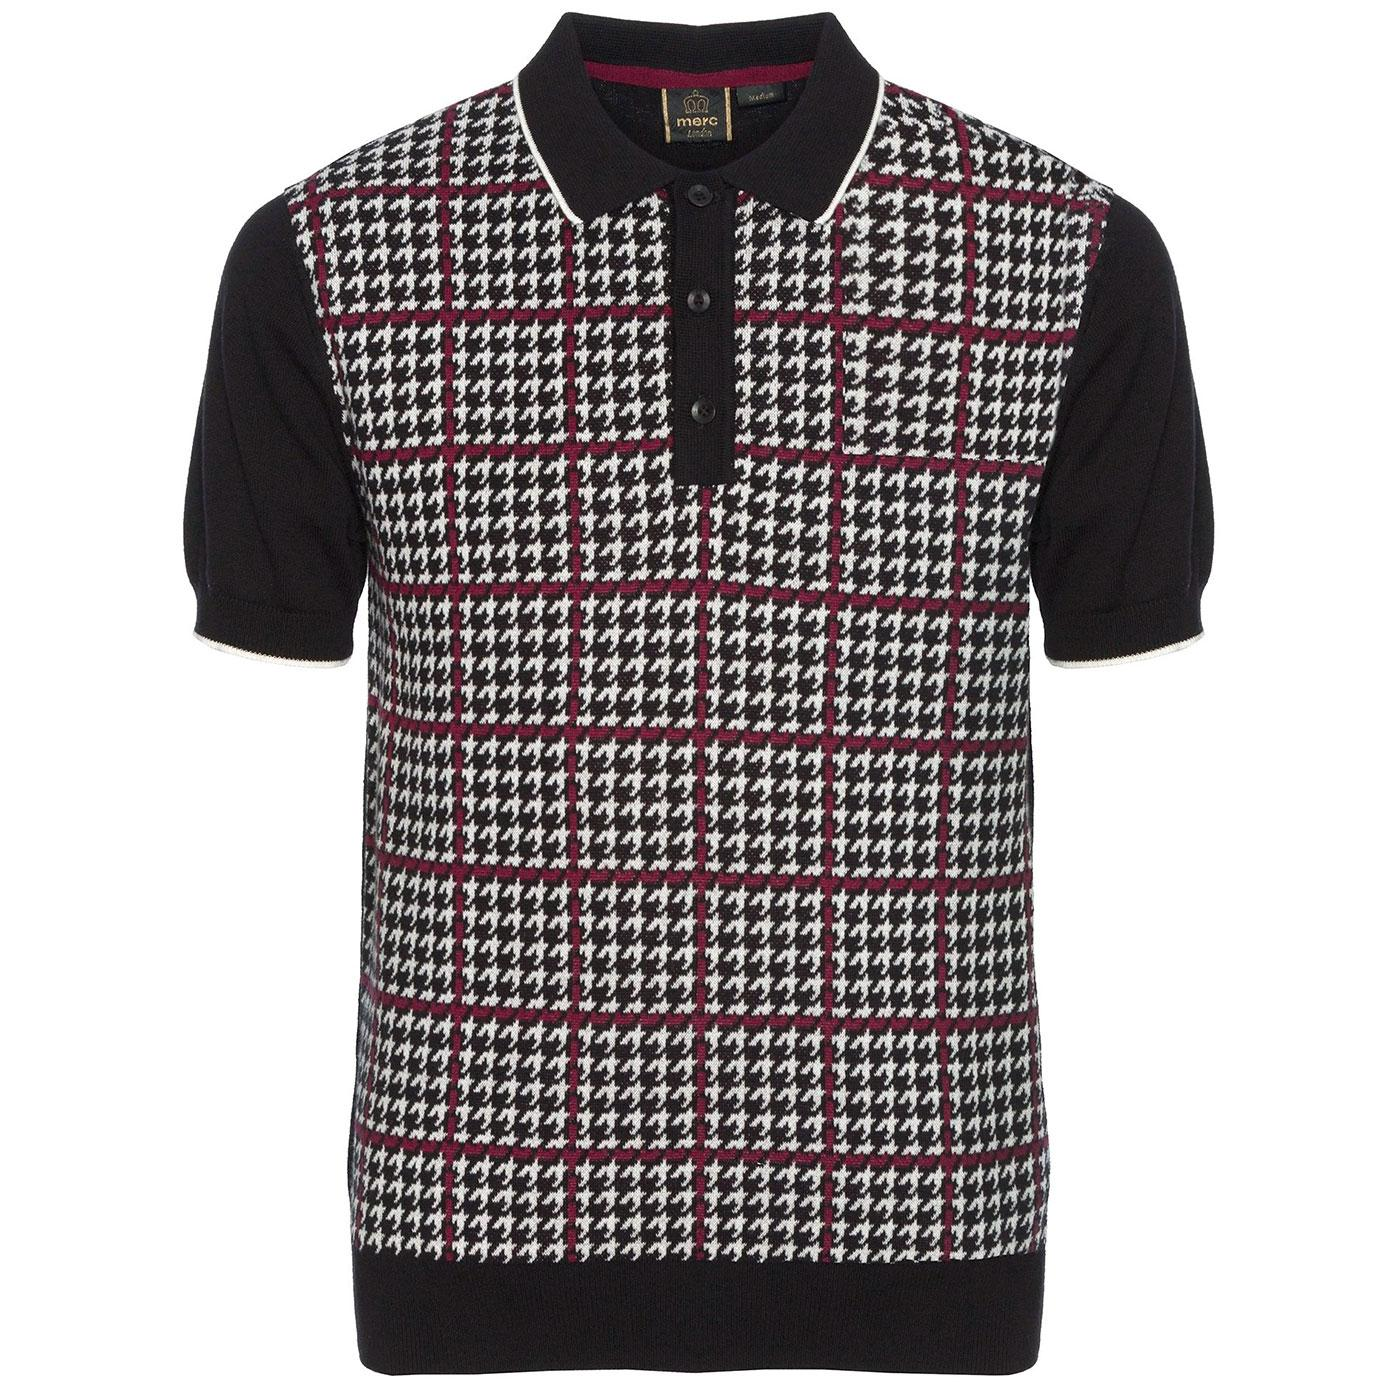 Tophill MERC Retro Mod Prince of Wales Knit Polo